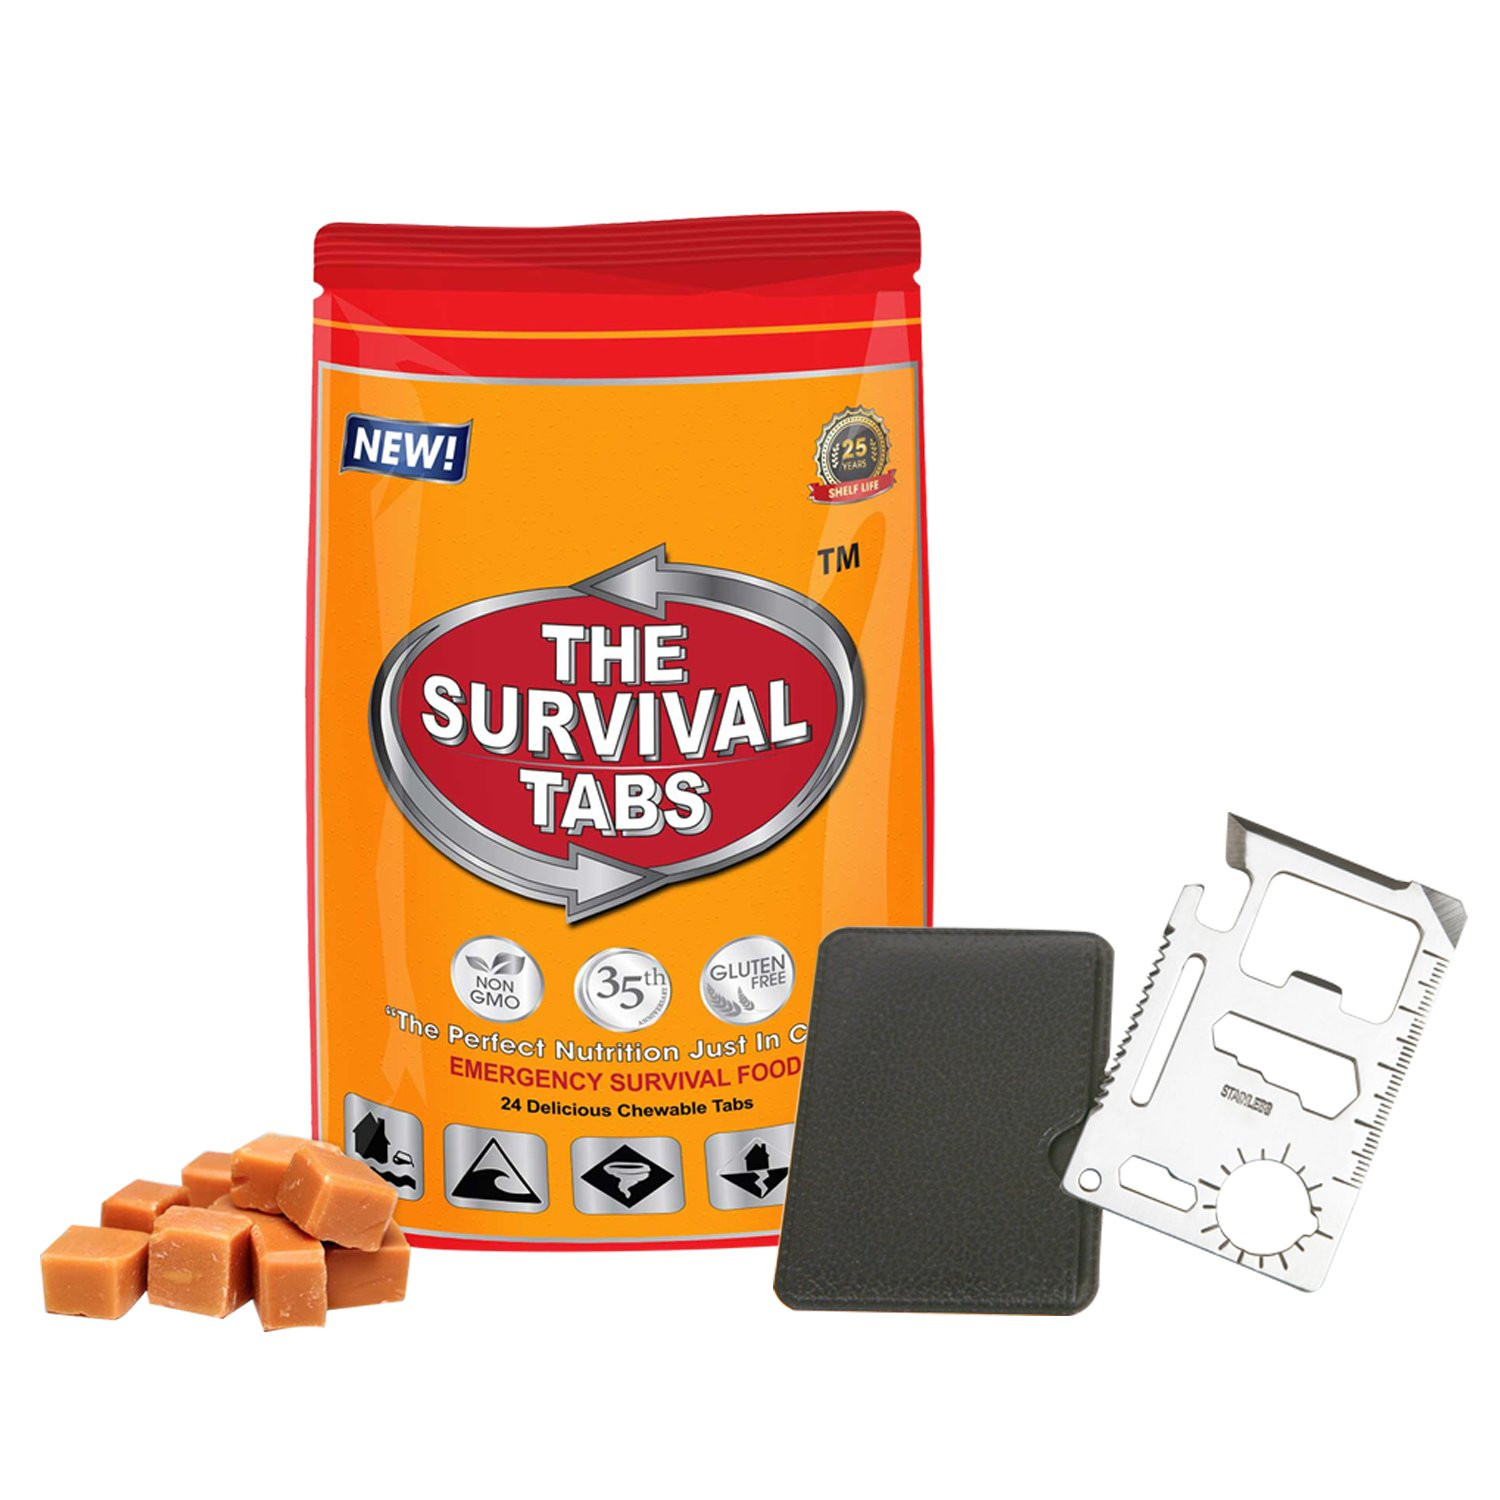 все цены на 11 in1 Multi Tools Hunting Survival Camping Pocket Military Credit Card Knife + New Advanced Formula MRE Meals Ready-to-eat Survival Meal 2-Day supply 24 tabs Ultimate Bugout Food 25 Years shelf life Gluten Free and Non-GMO - Butterscotch Flavor онлайн